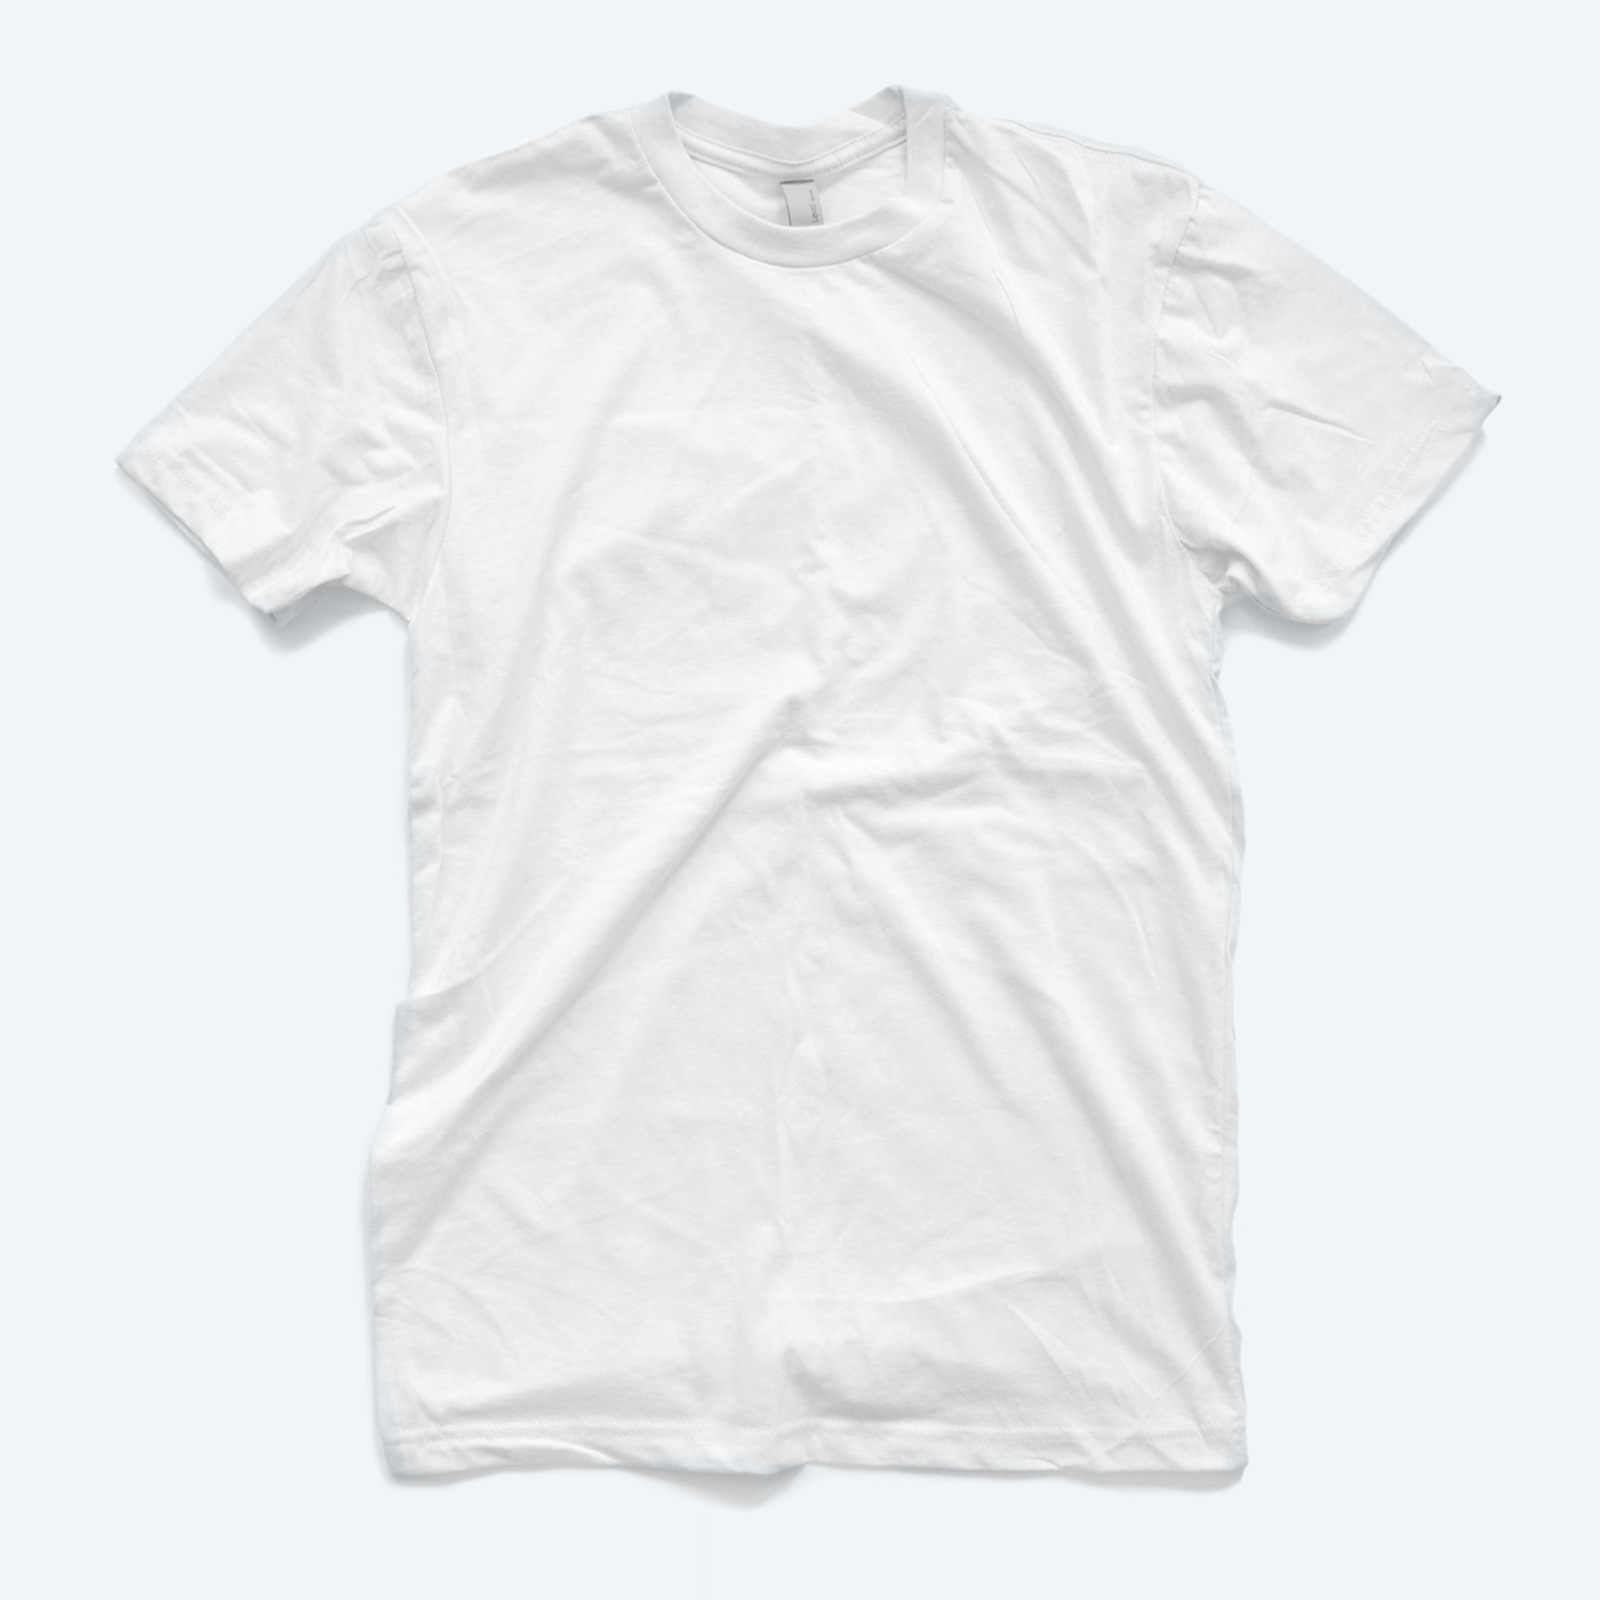 The classic unisex t-shirt is a great custom shirt to sell online.